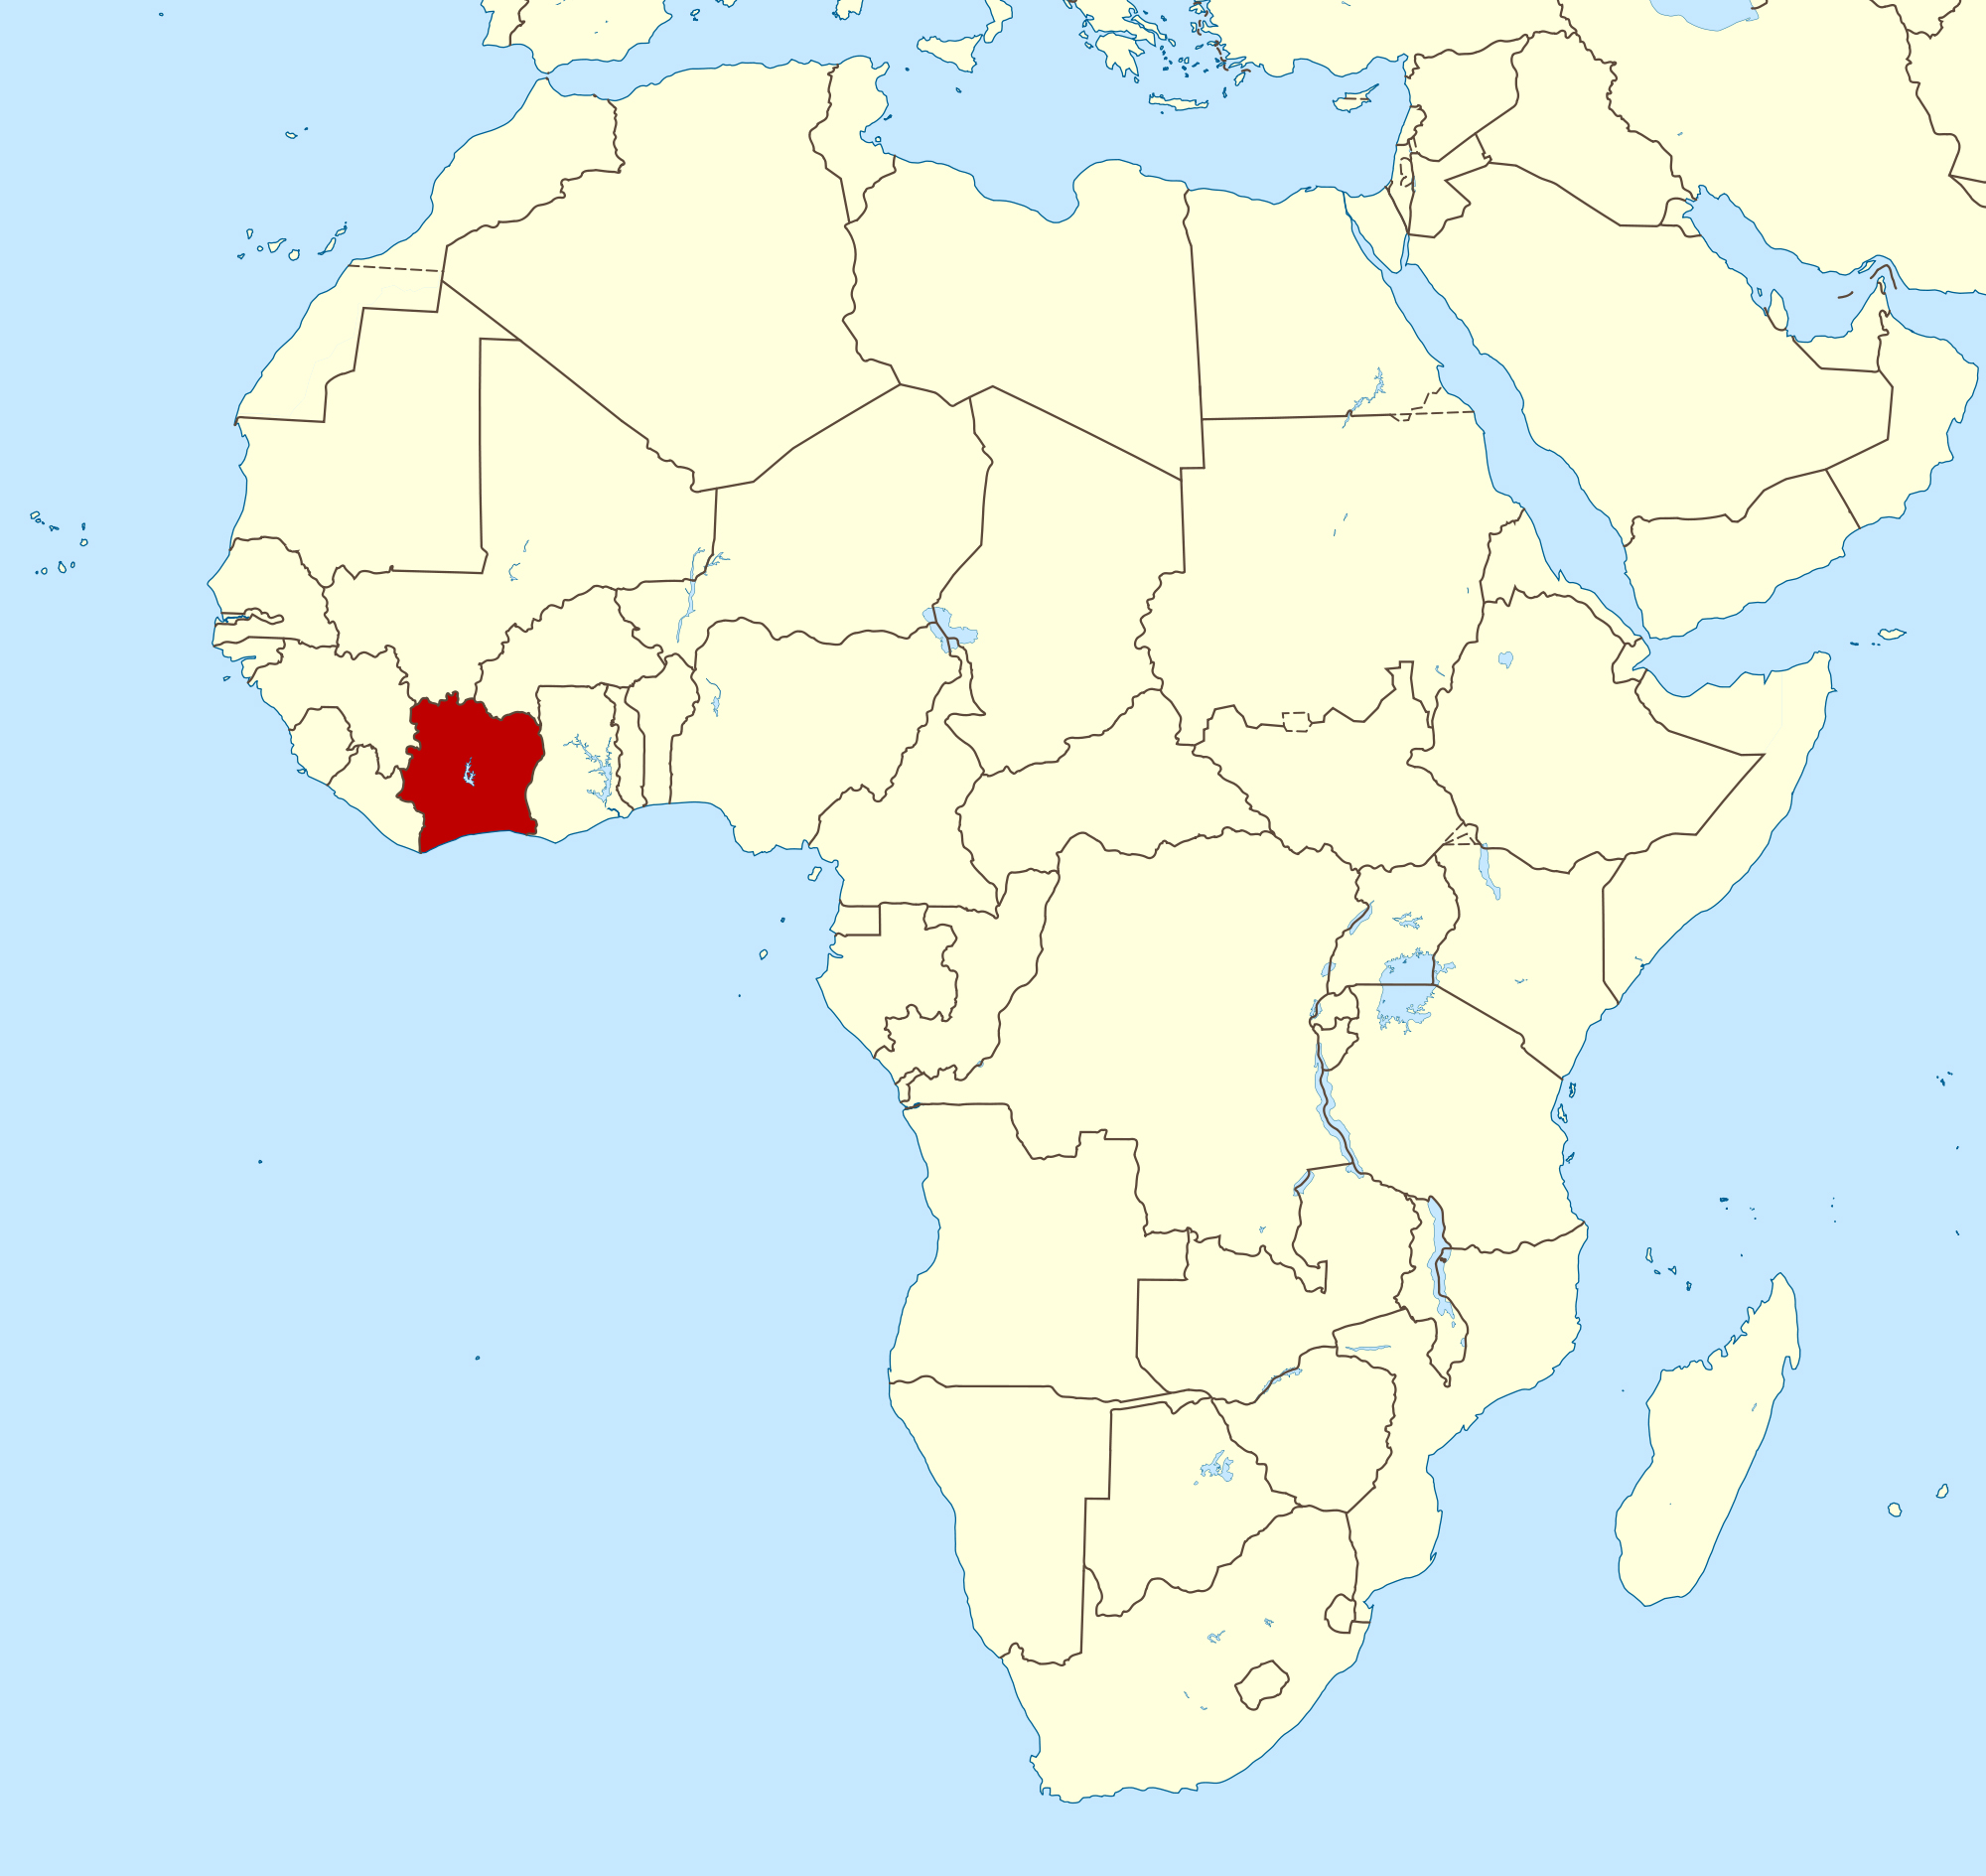 Large location map of Cote d'Ivoire in Africa | Cote d'Ivoire